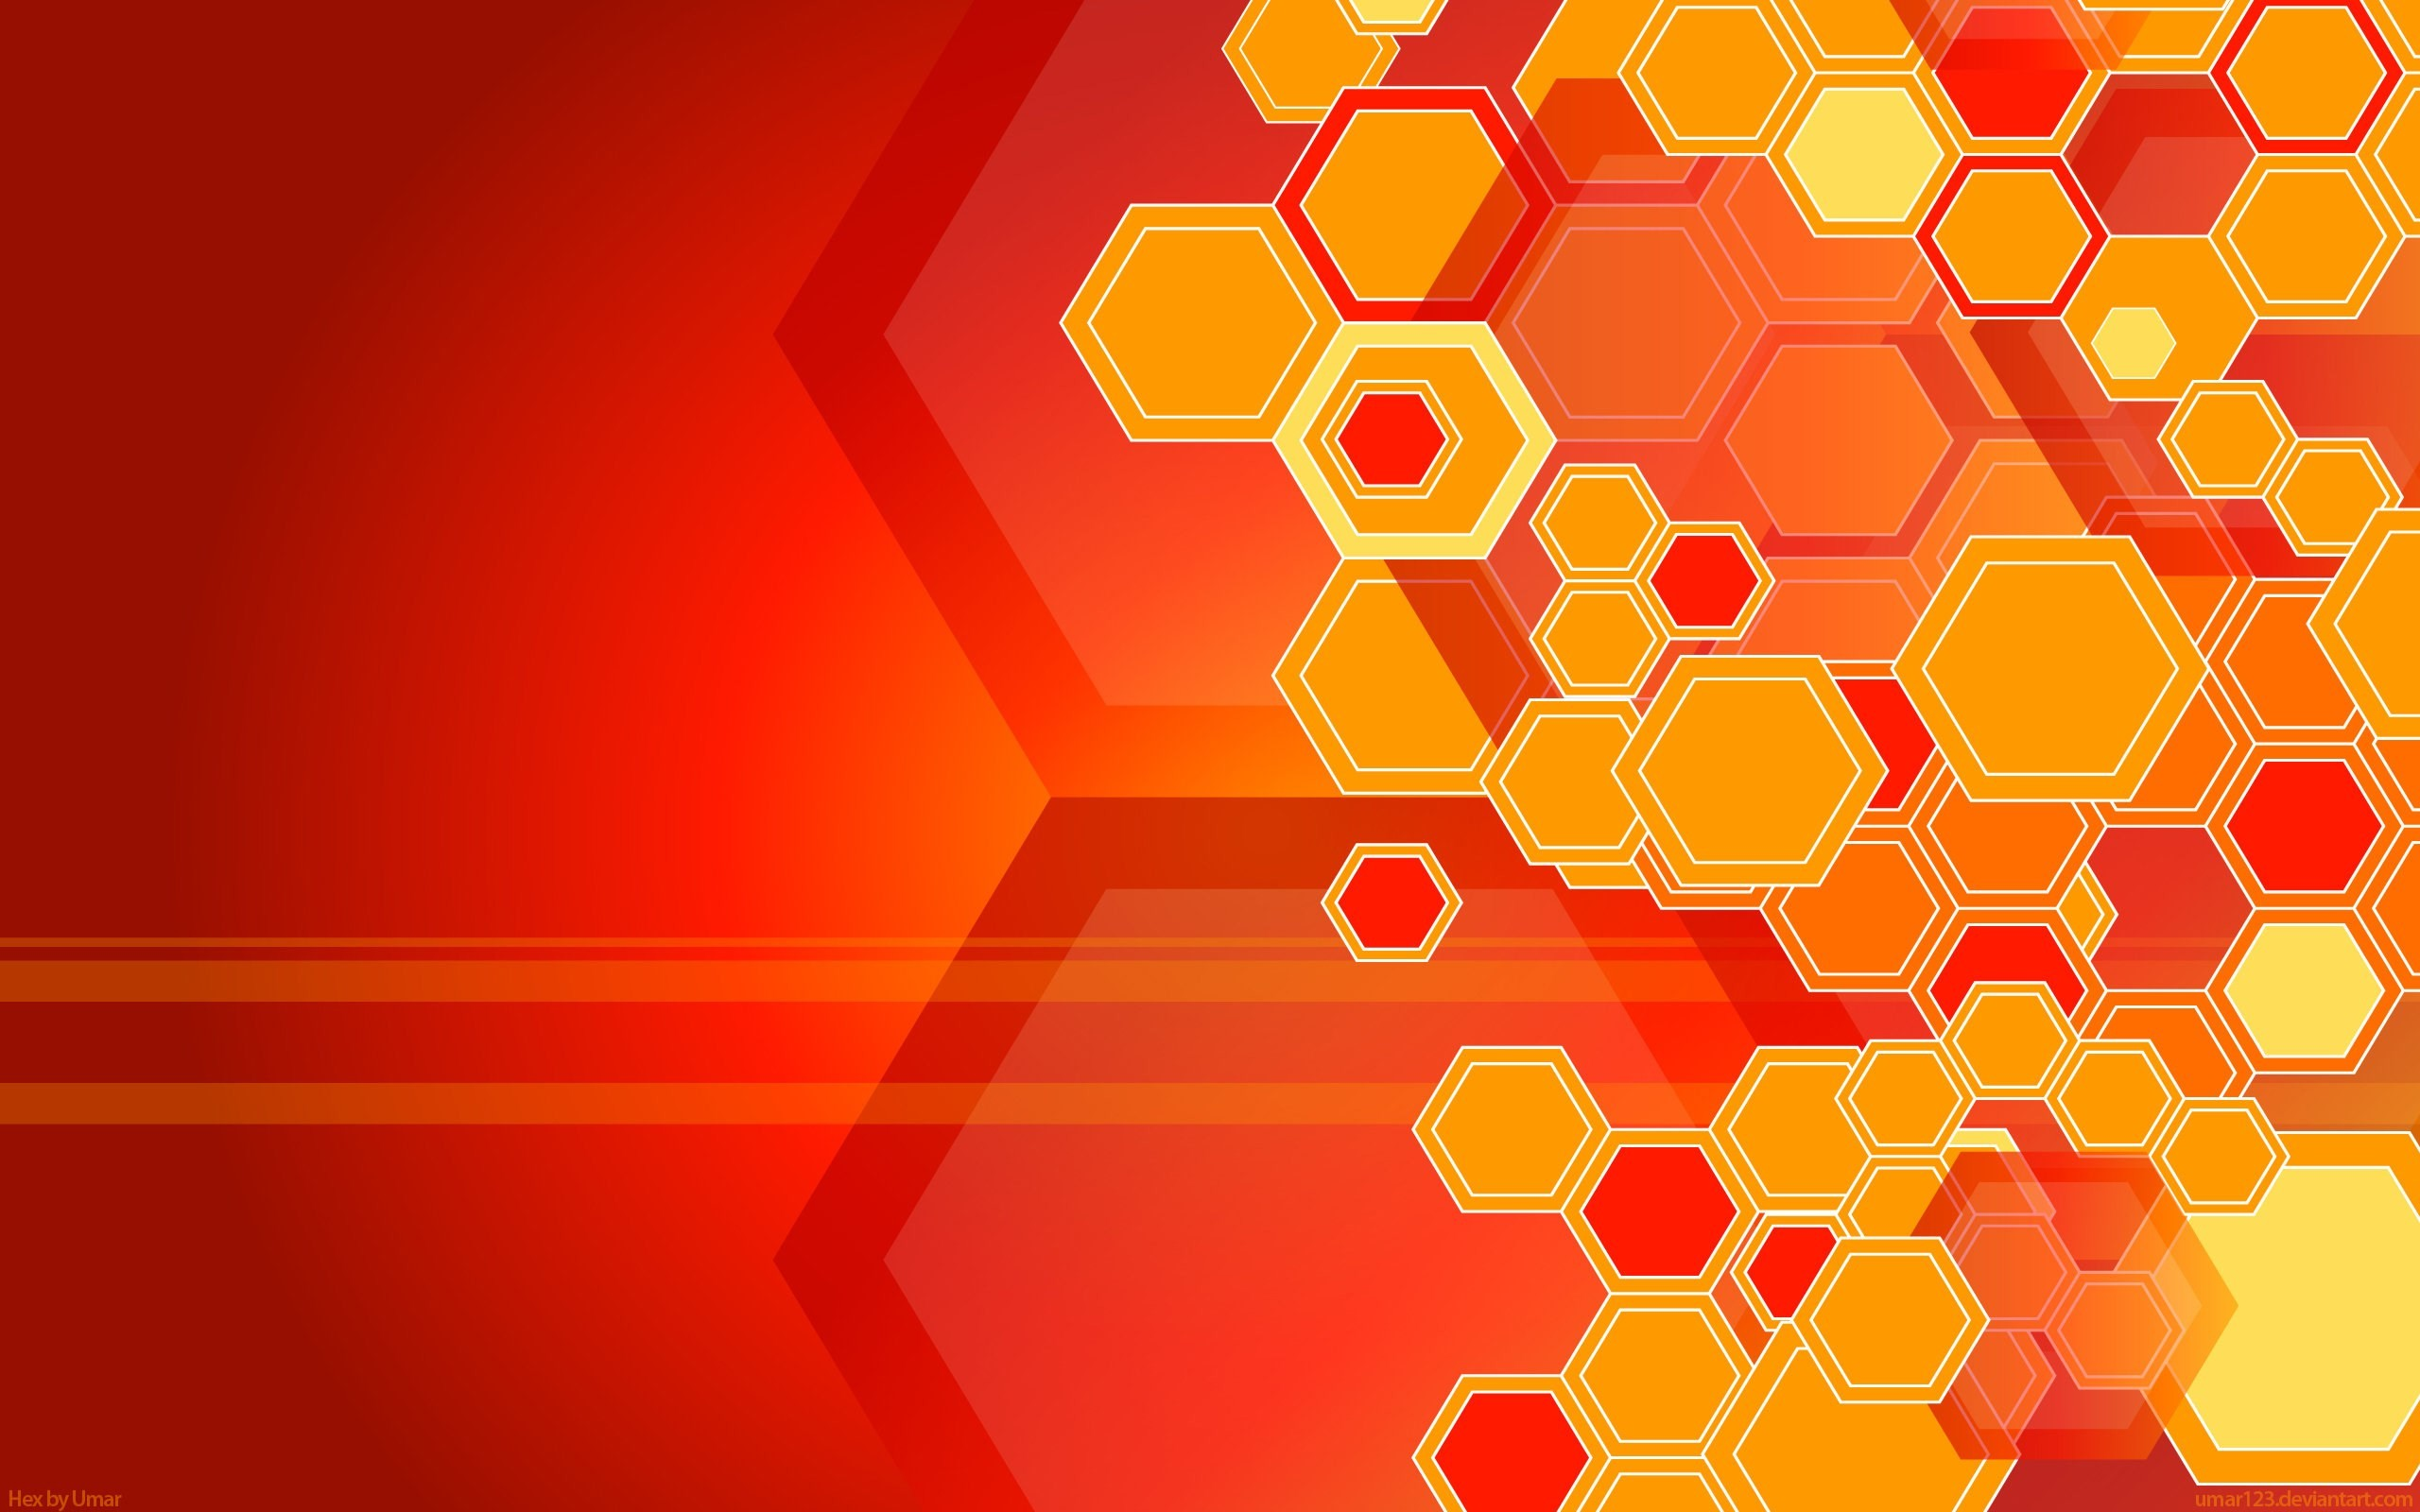 This hexagon shape abstract wallpaper will be a good material for your  graphic design project on Photoshop. You can also use this image for your  PC desktop